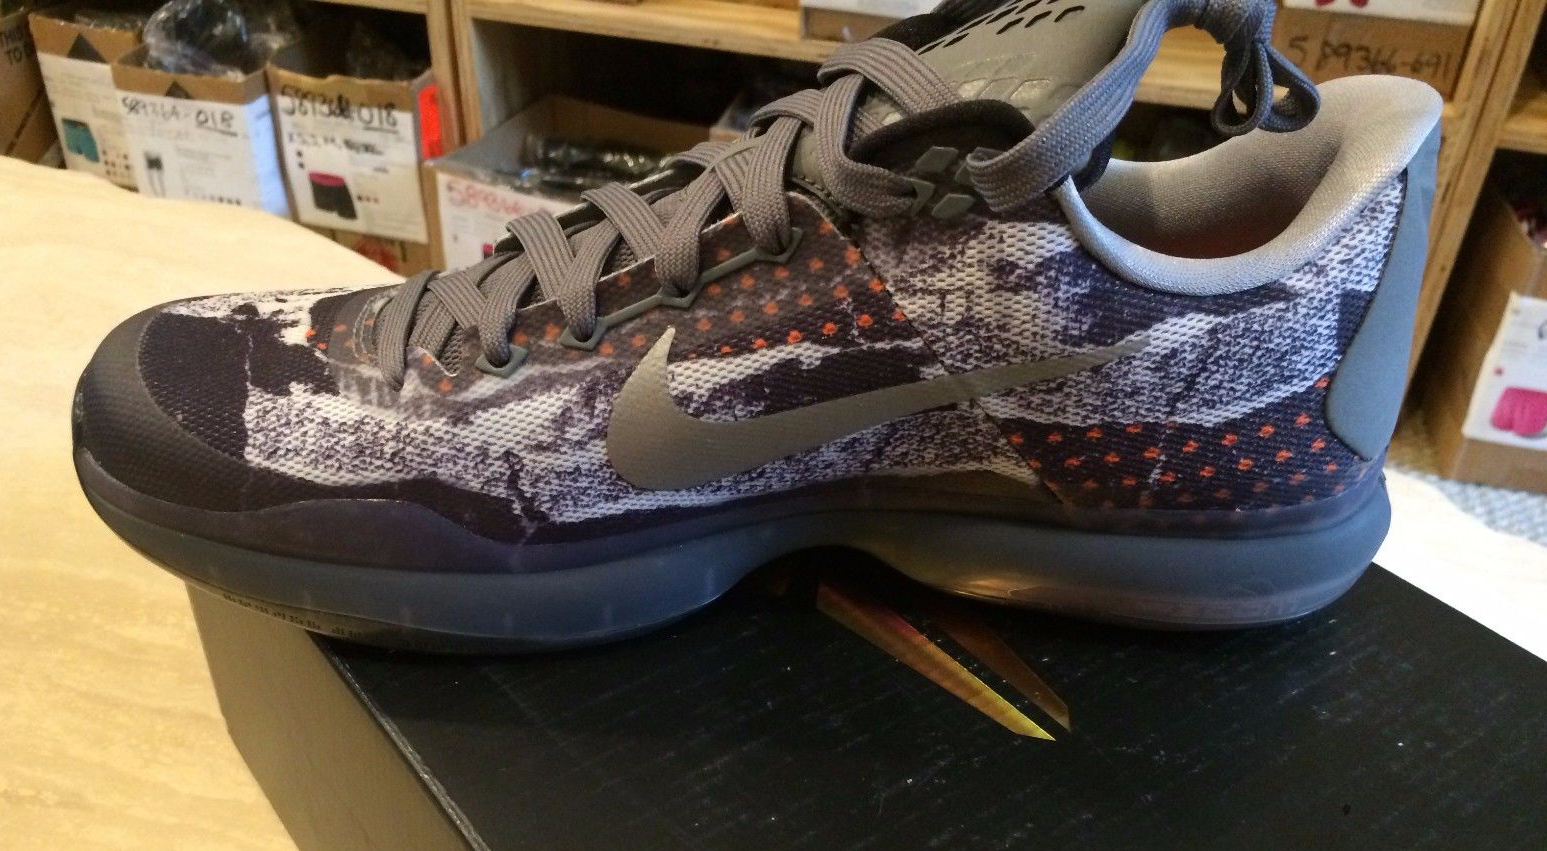 Your Best Look Yet at the  Pain  Nike Kobe 10s  2e9df8c81